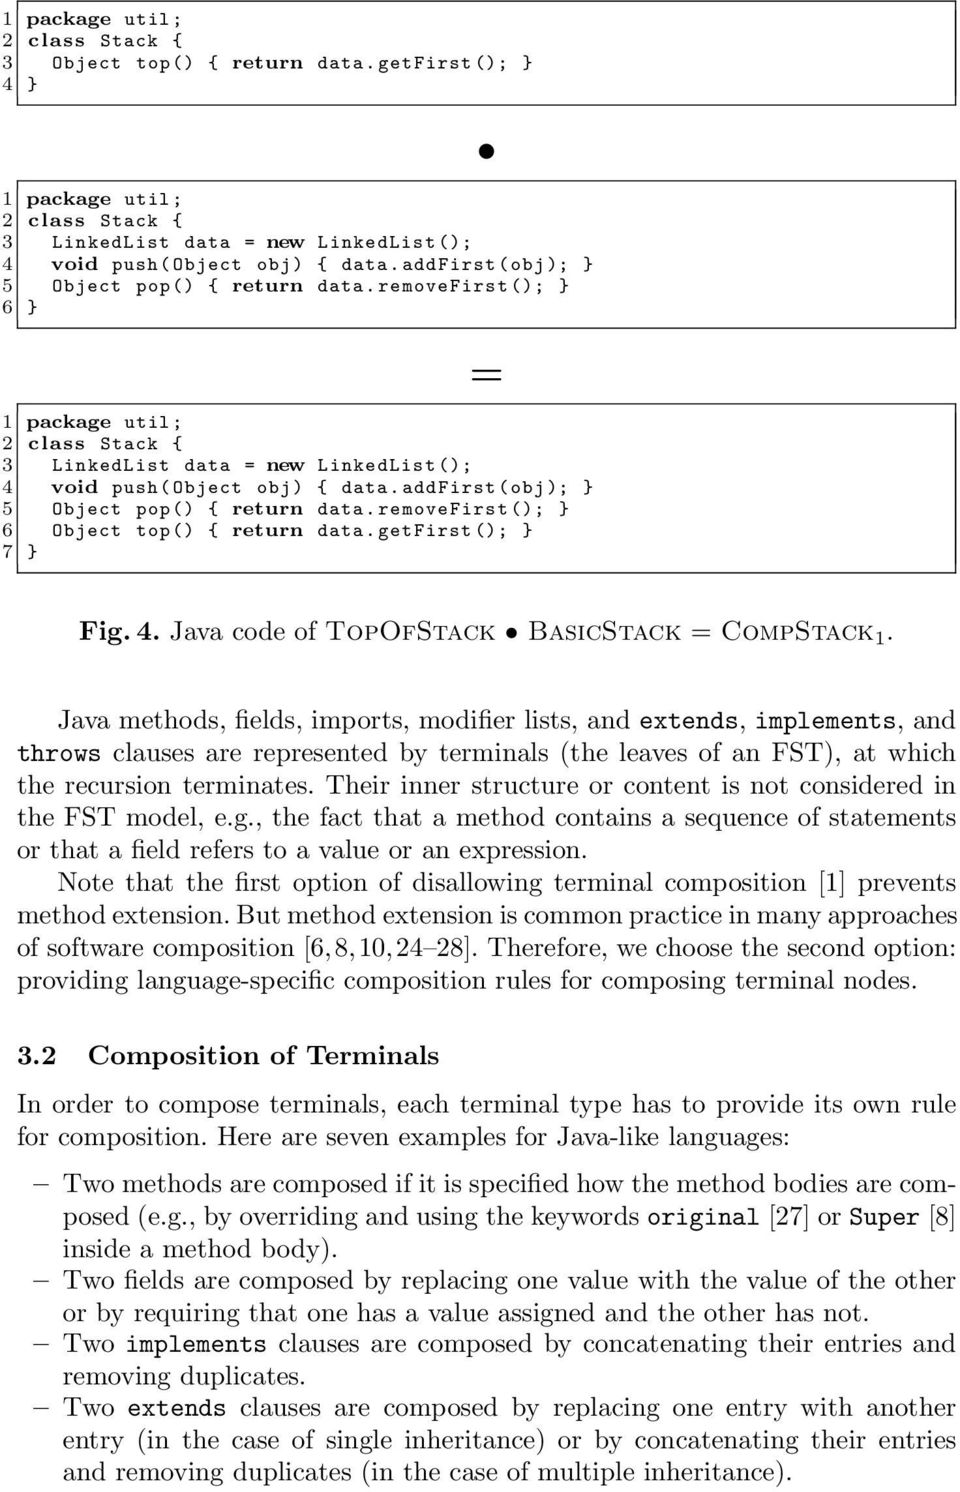 addfirst ( obj ); } 5 Object pop () { return data. removefirst (); } 6 Object top () { return data. getfirst (); } 7 } Fig. 4. Java code of TopOfStack BasicStack = CompStack 1.